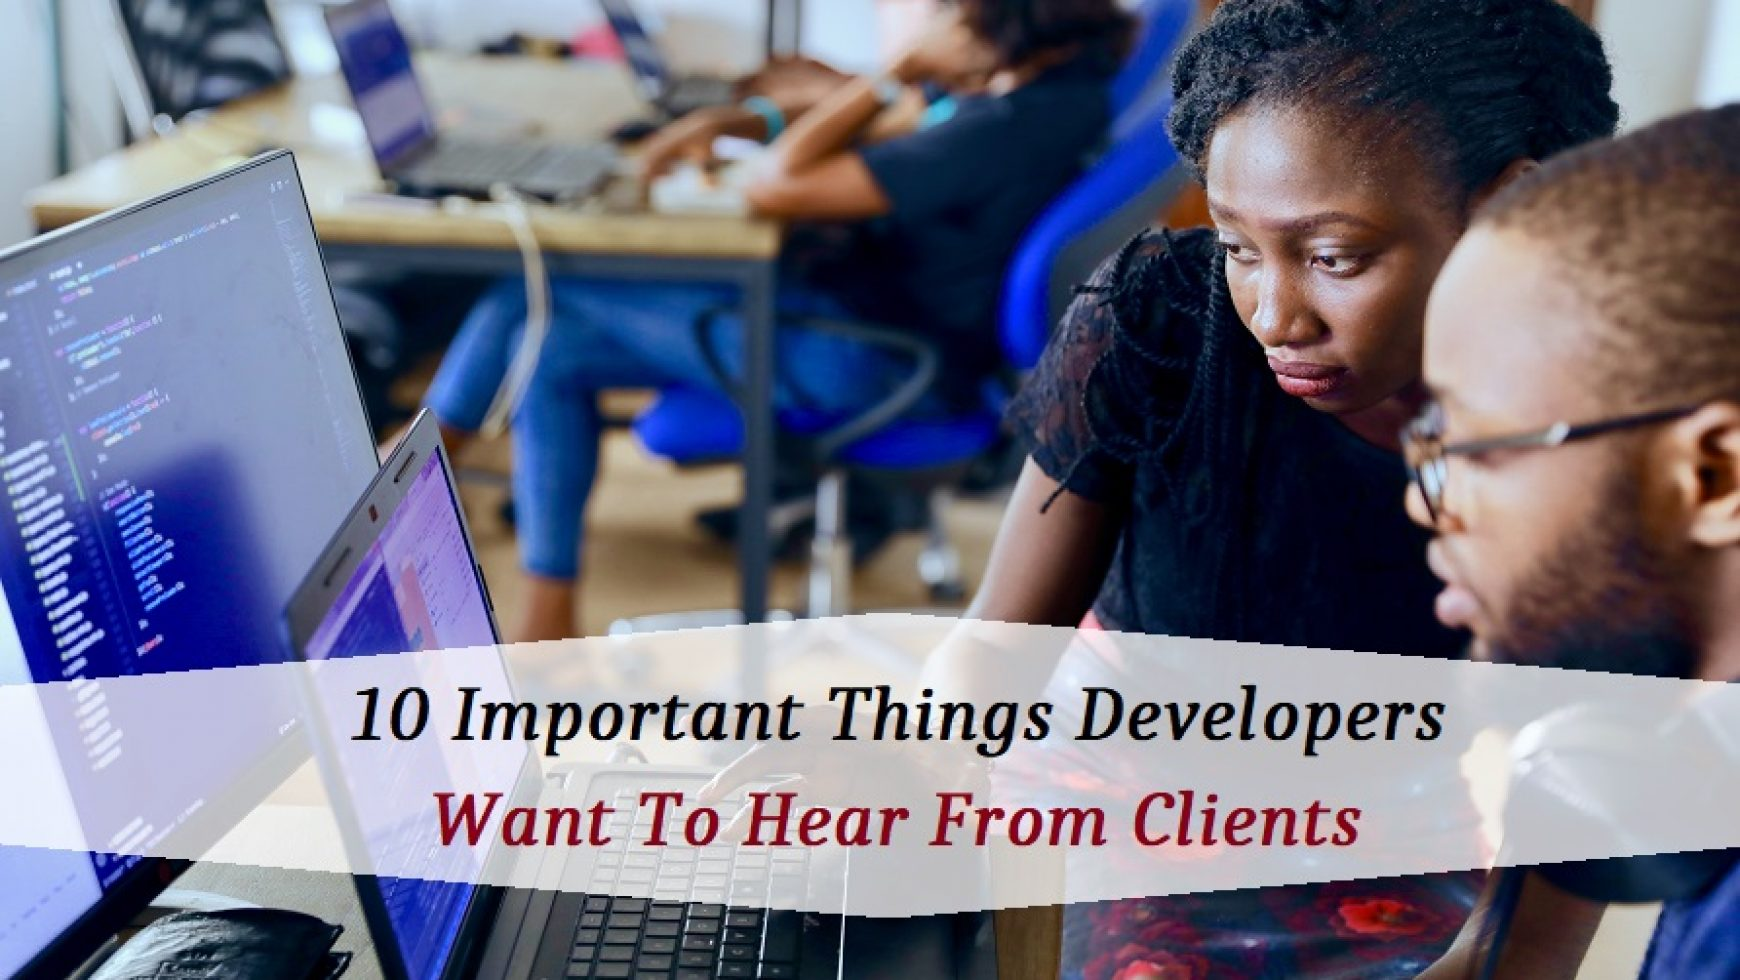 10 Important Things Developers Want To Hear From Clients